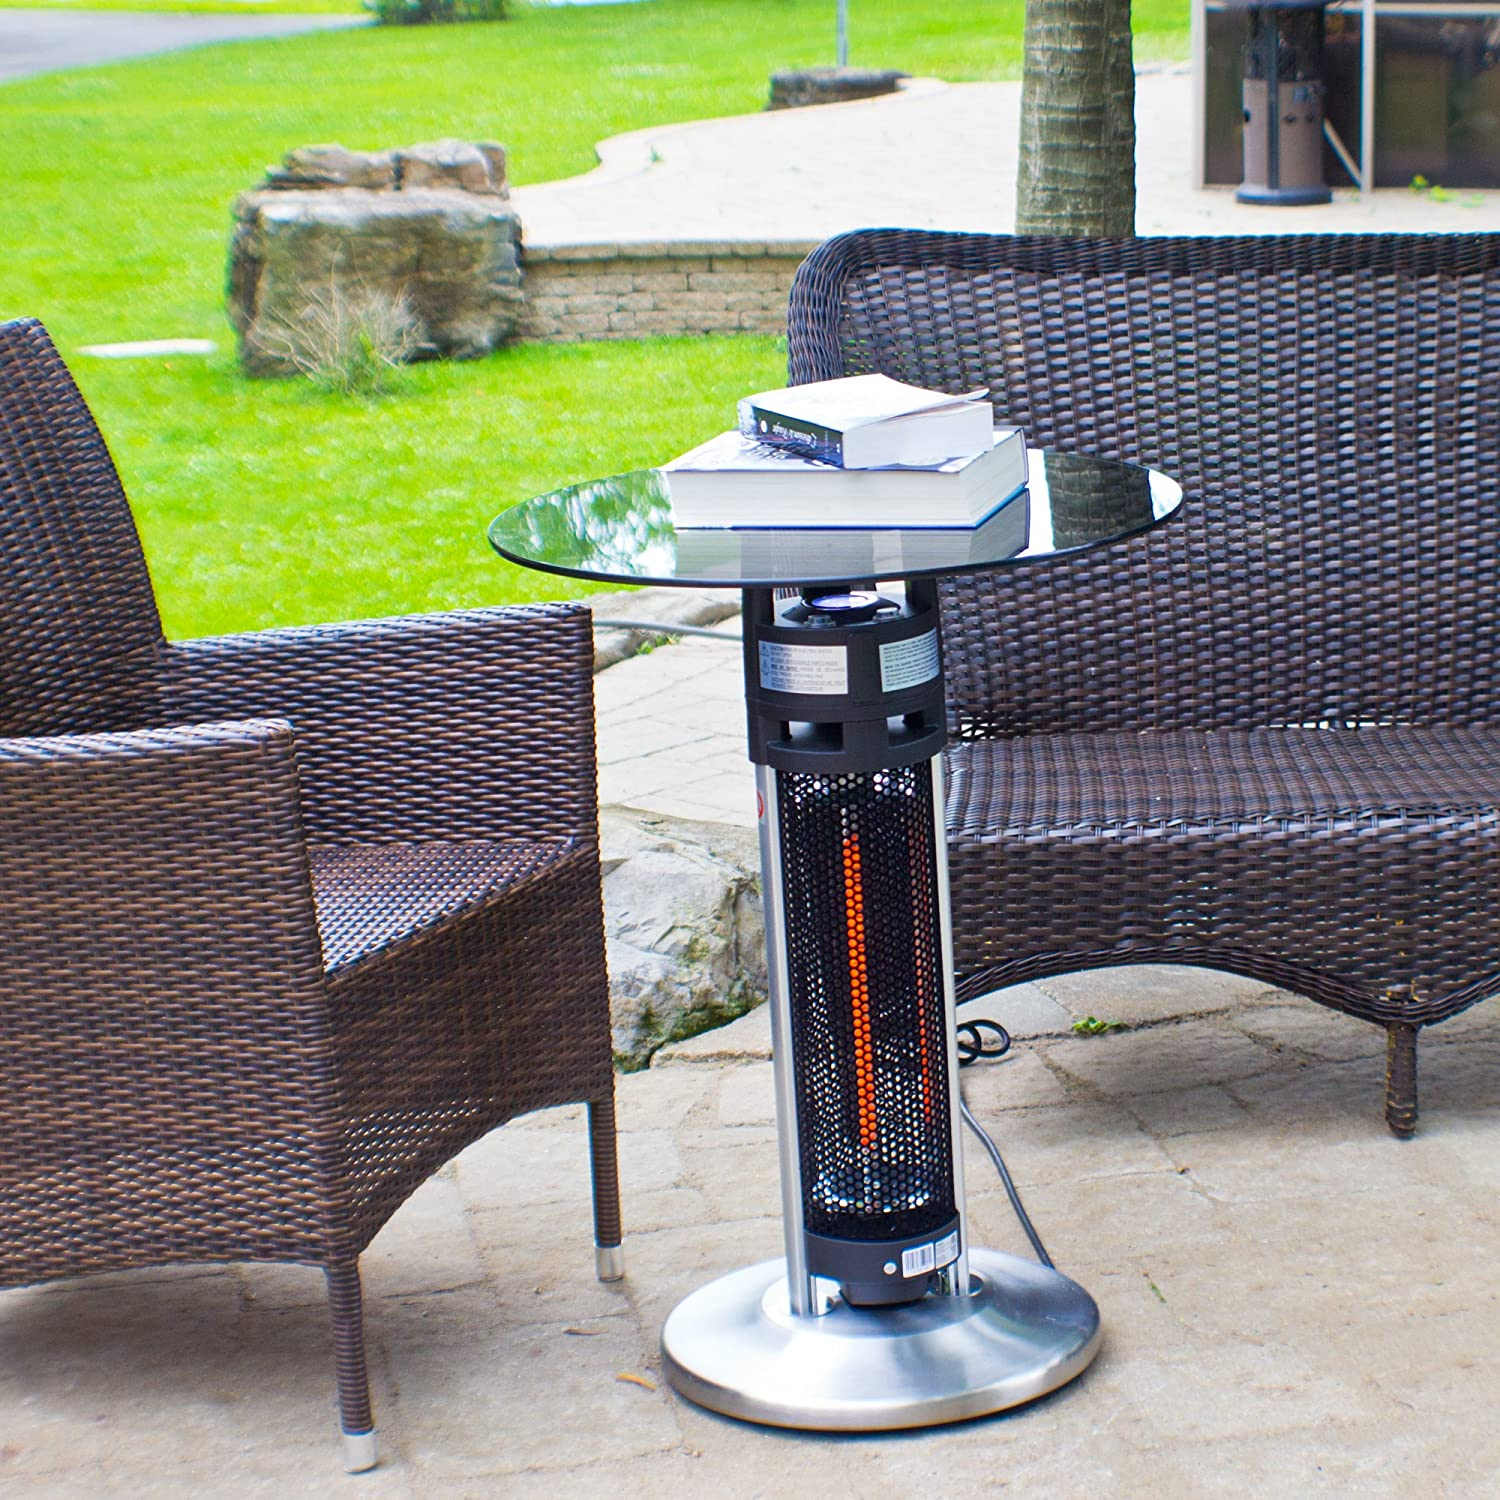 Amazon.com : Ener G+ Freestanding Outdoor Electric Patio Heater With LED  Light And Infrared Heated Table, Silver : Garden U0026 Outdoor